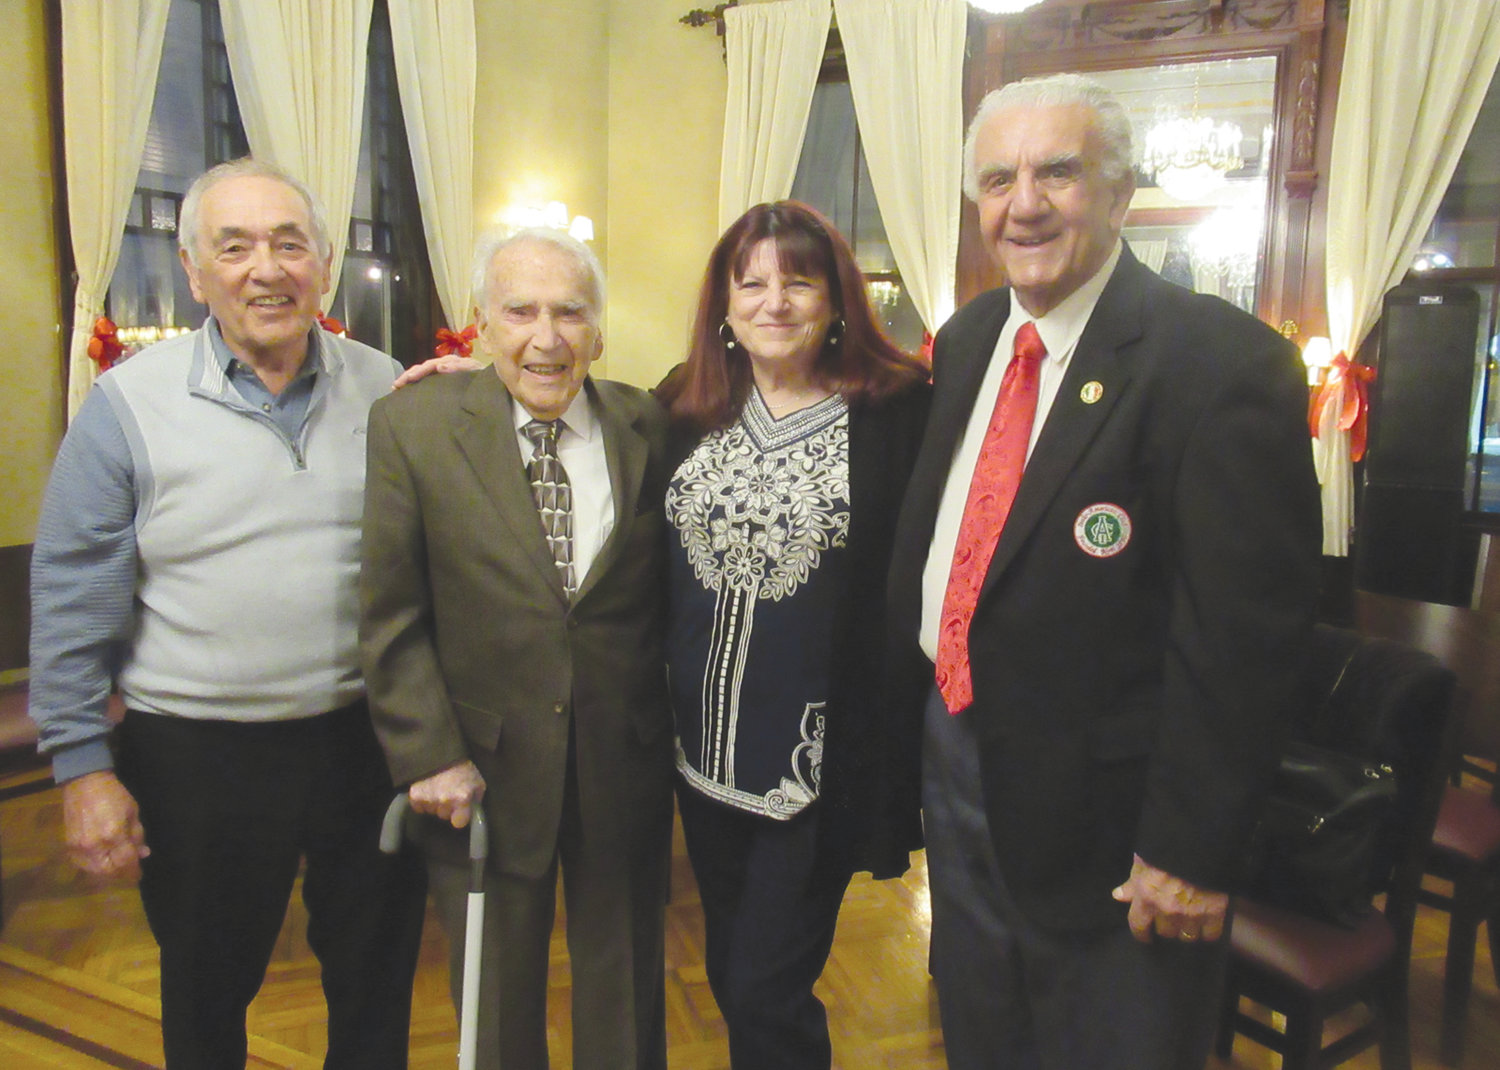 MIGHTY MEMBERS: Johnston's Julio Rotondo, second left, the oldest member of the Italo-American Club who was recently honored at a 100th birthday bash, is joined by members Joe Grasso, Linda Folcarelli and Peter Lombardi, who at age 86 stepped down from the board but was elected building superintendent by the current leadership.